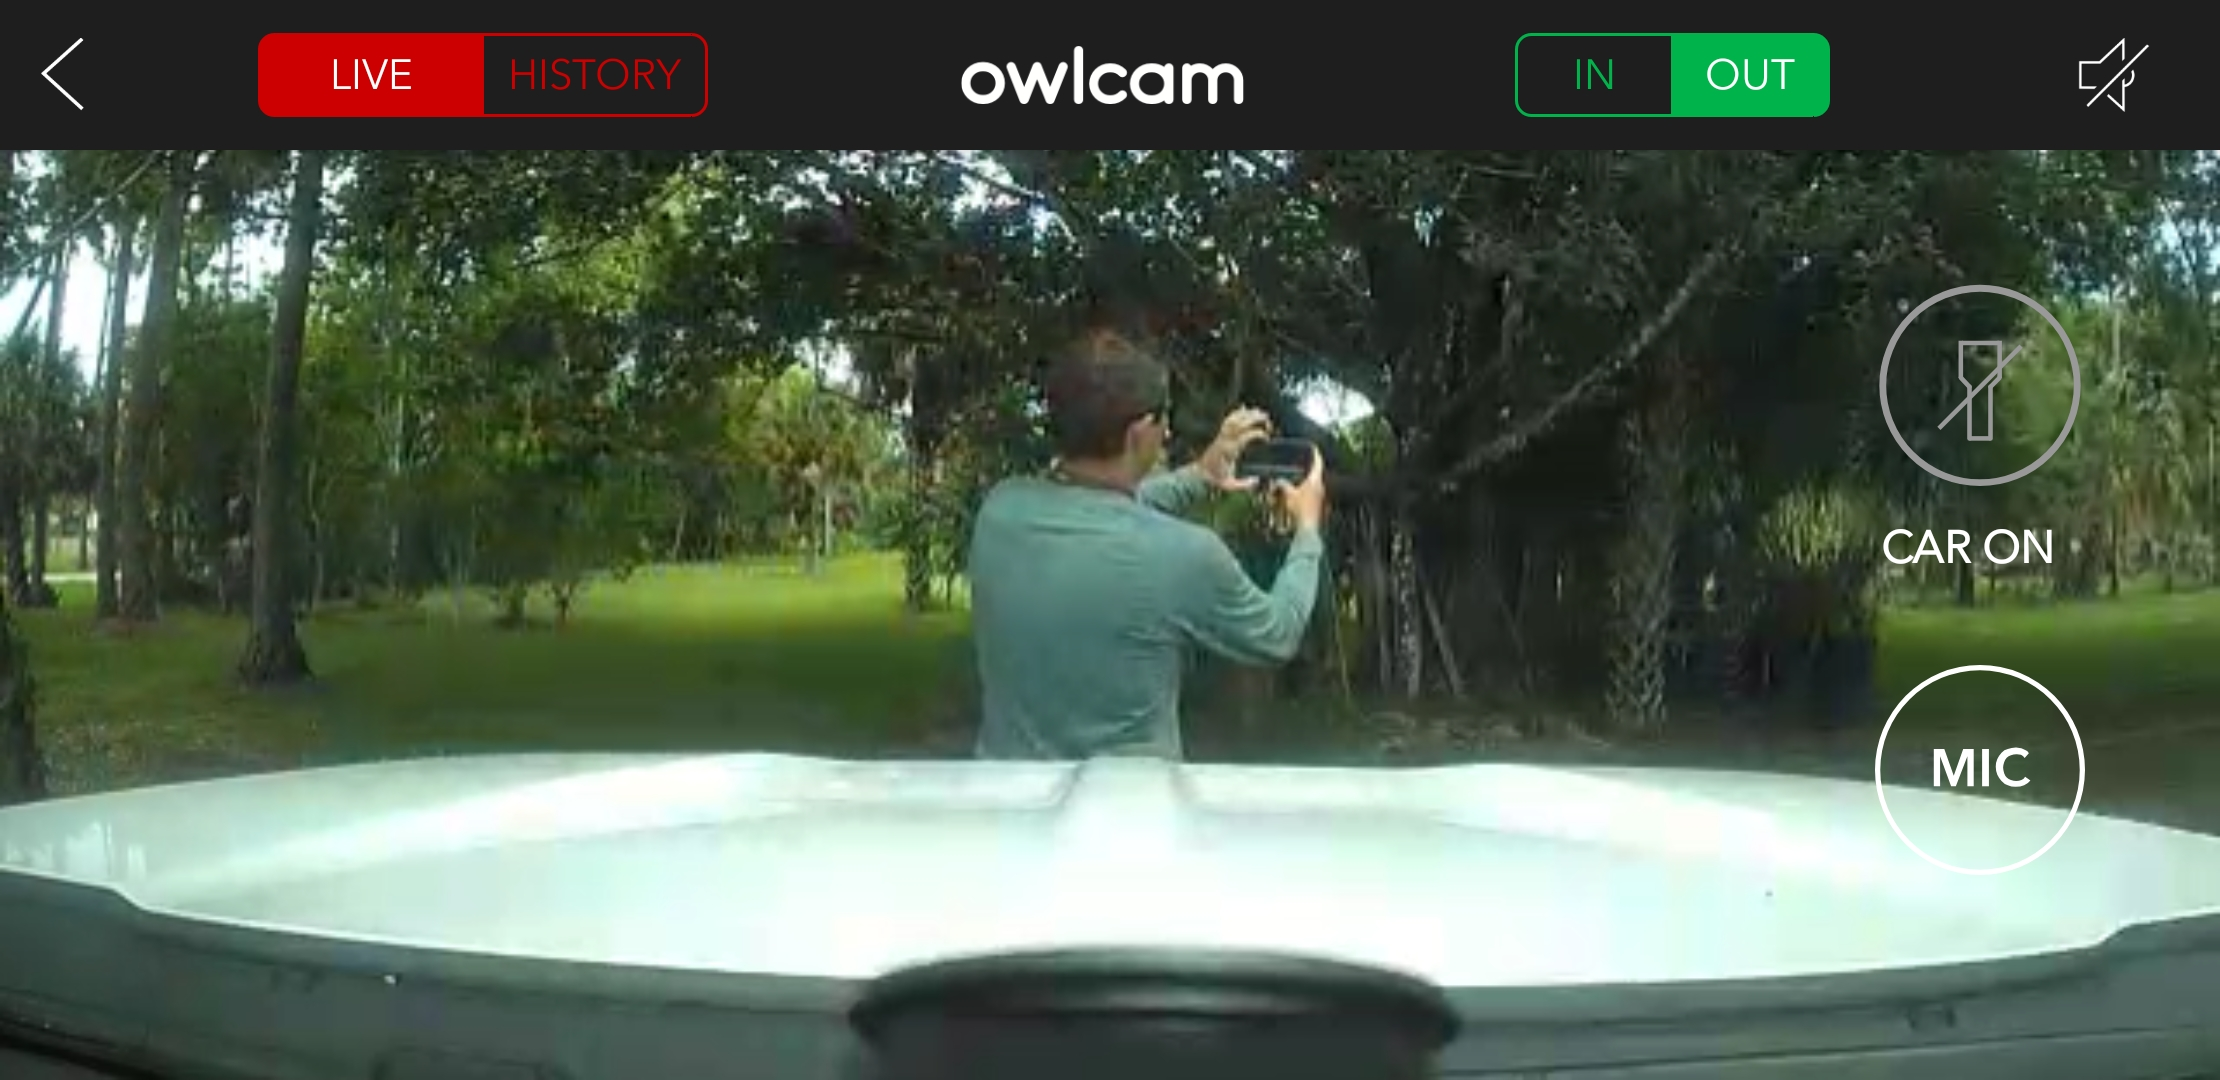 Owl Car Cam Live View